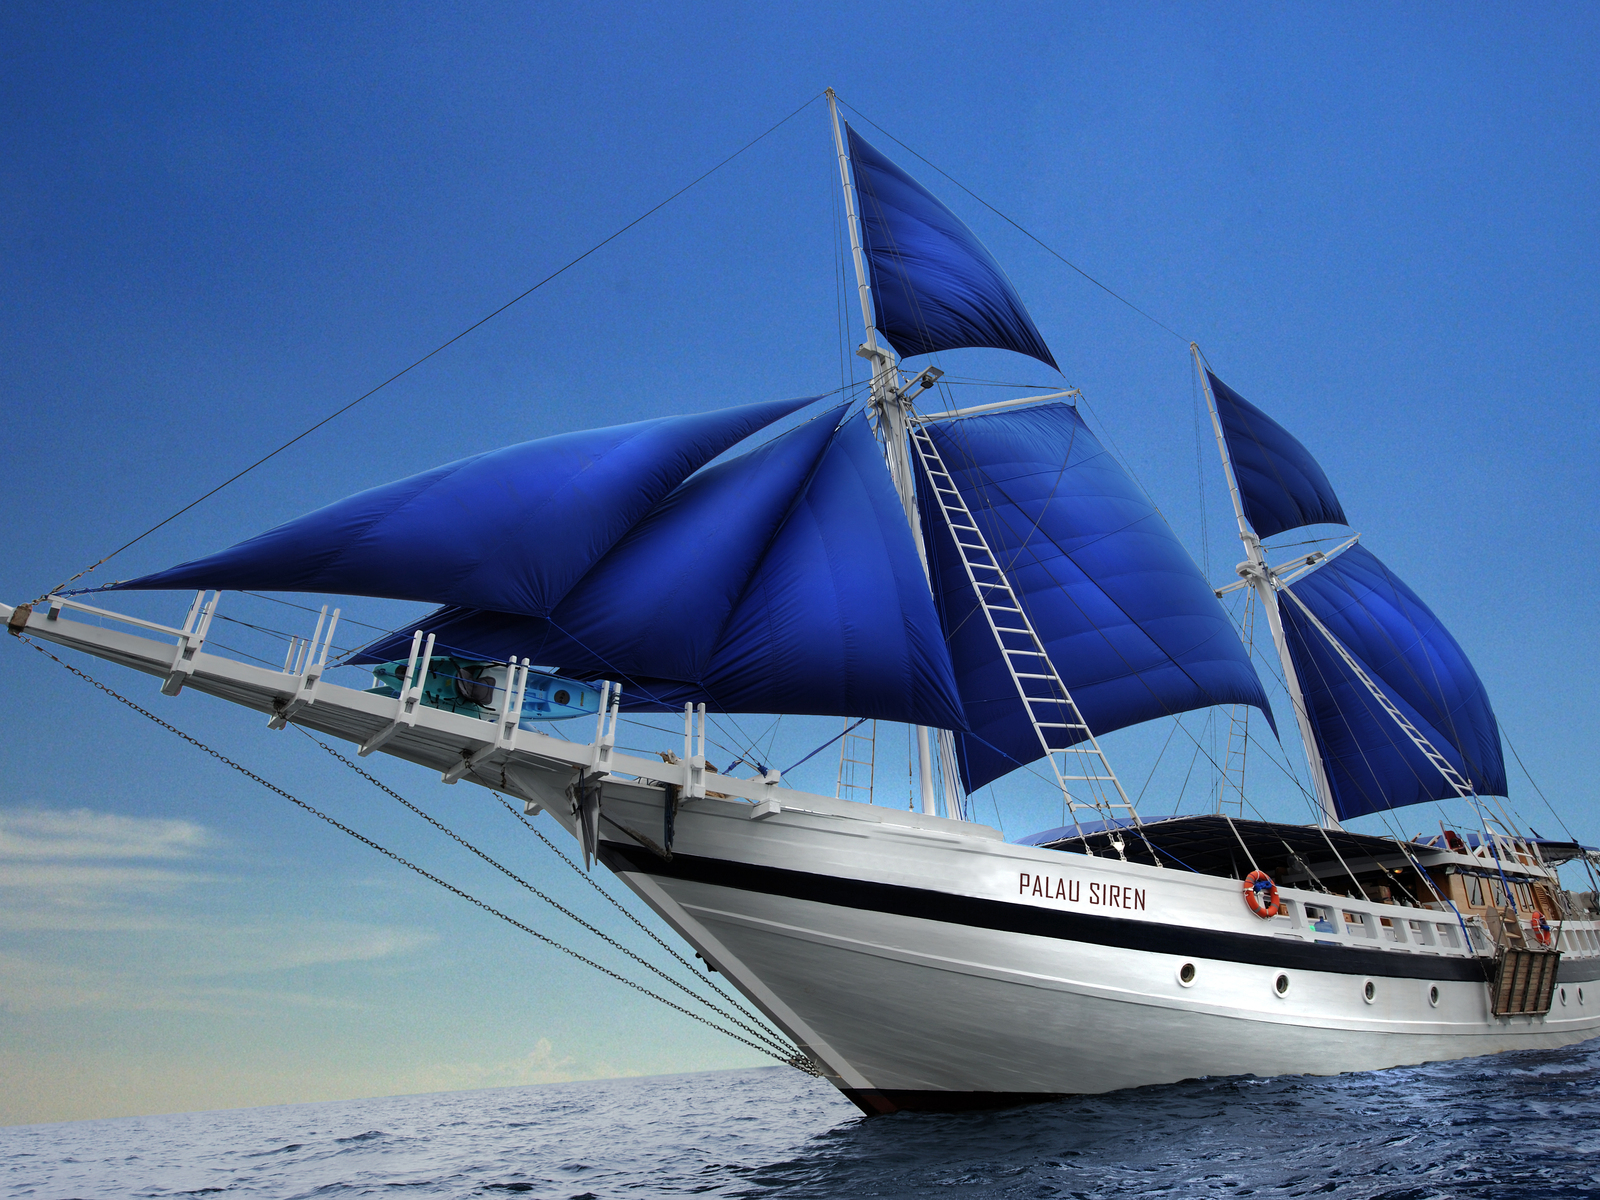 Yacht with blue sails